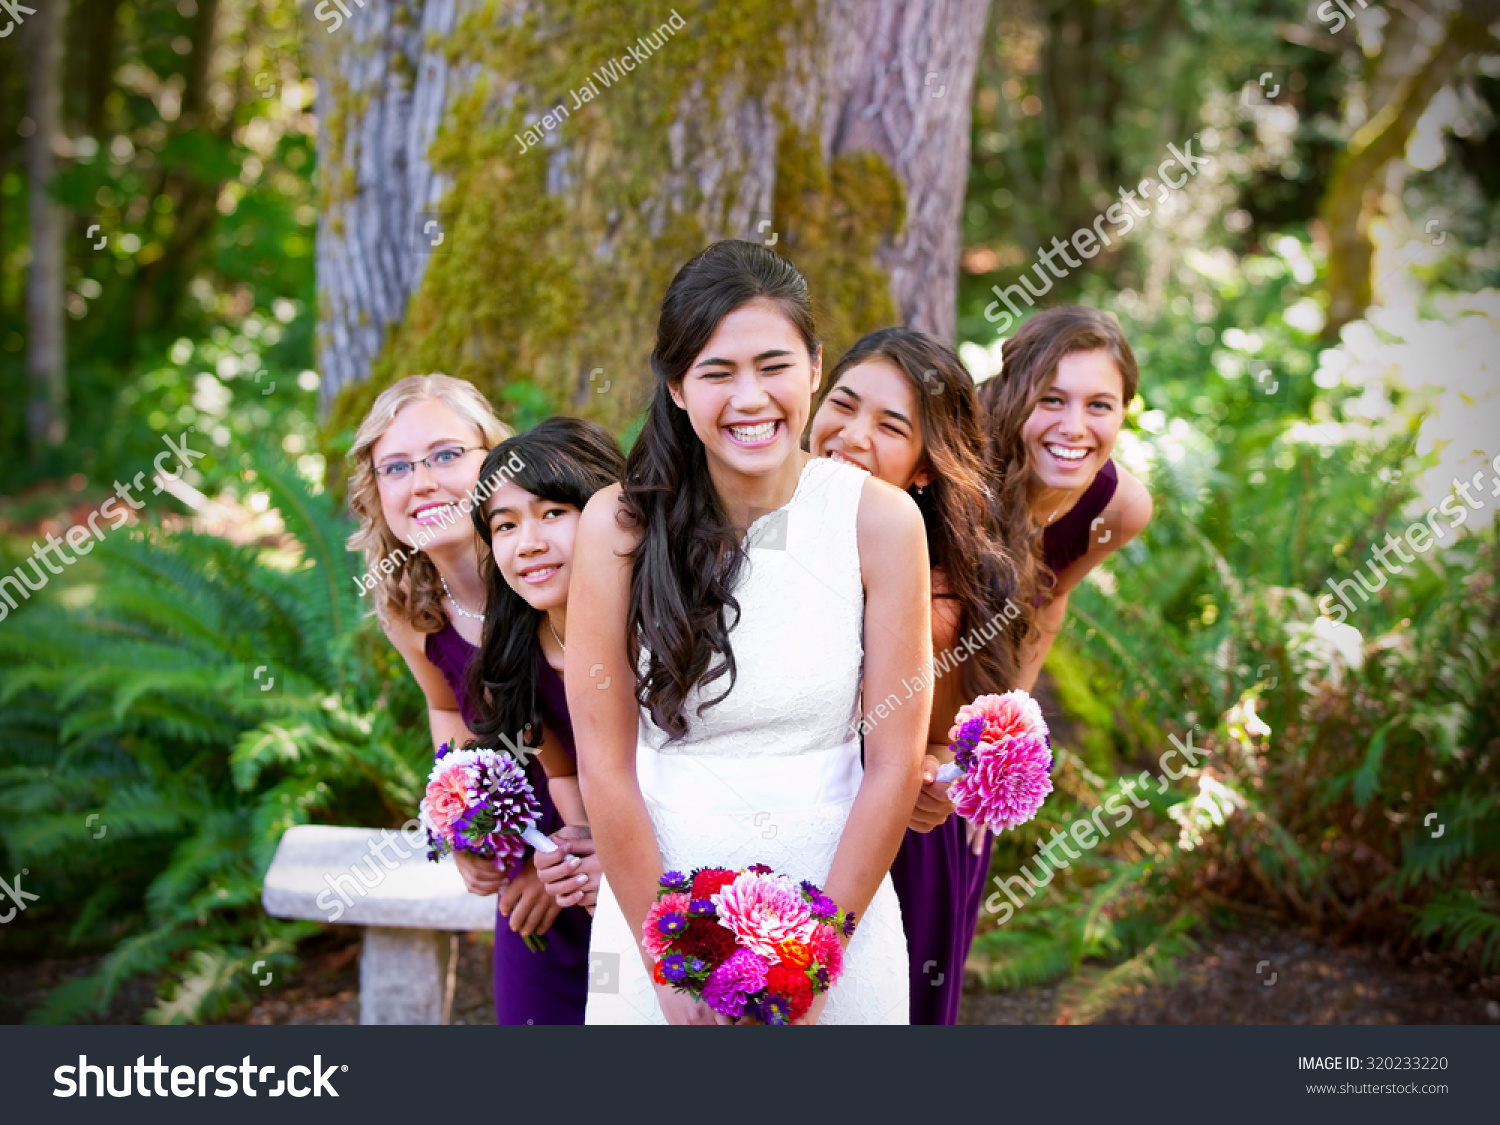 Beautiful biracial young bride smiling her stock photo 320233220 beautiful biracial young bride smiling with her multiethnic group of bridesmaids in purple dresses ombrellifo Gallery